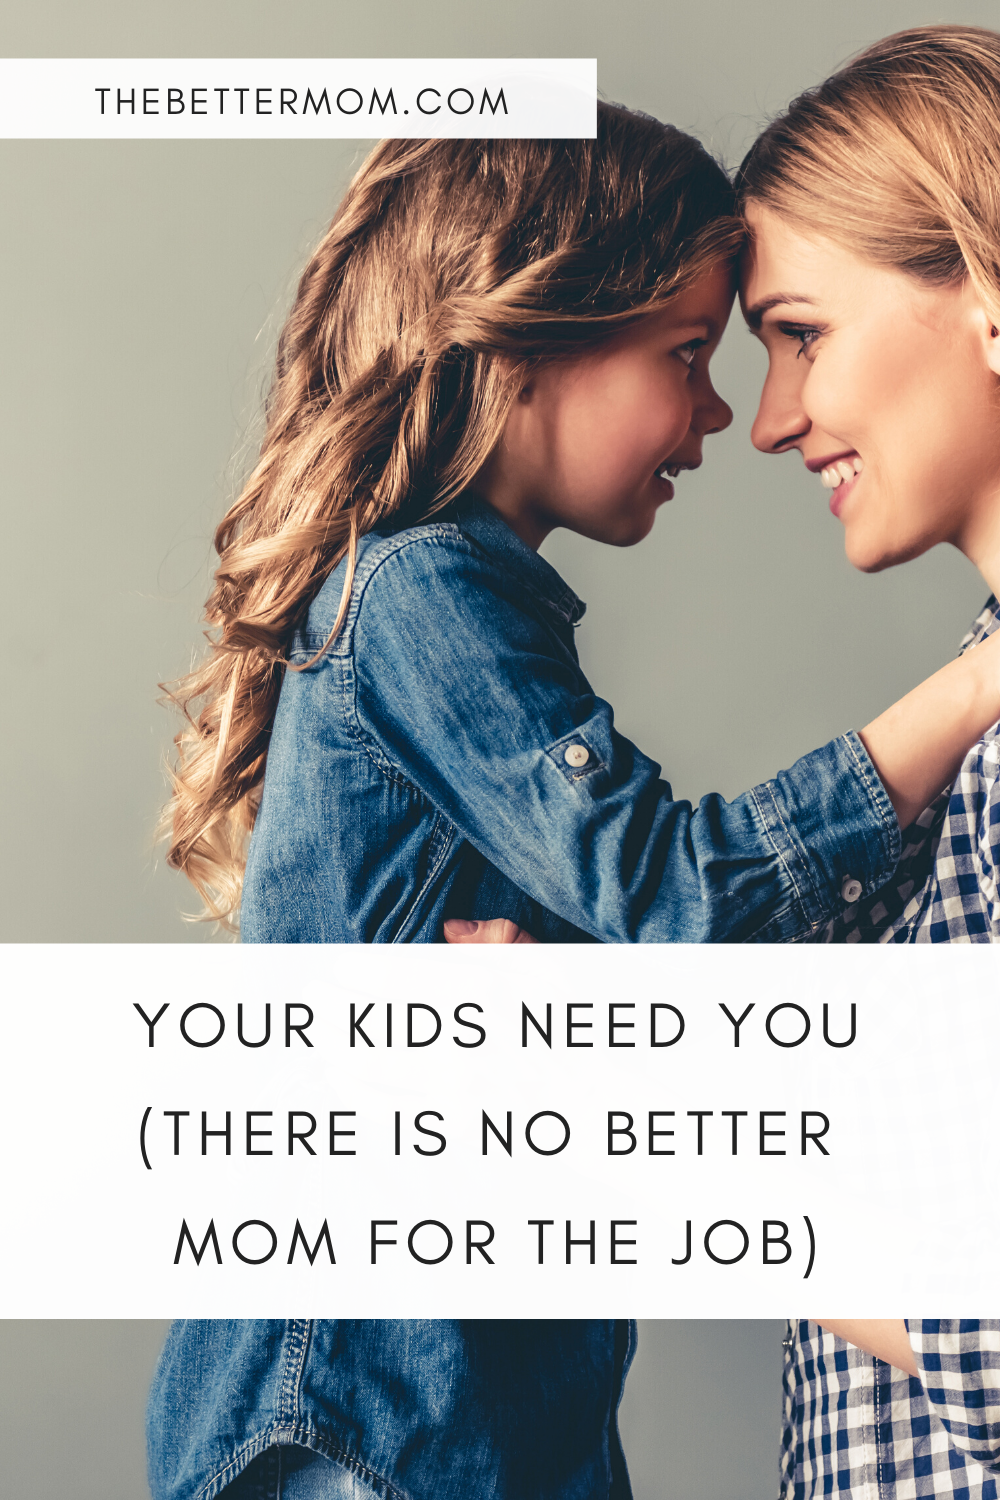 It doesn't get easier. From diapers to diplomas we all think the mom next door is doing this motherhood thing way better than we are. Yes, motherhood is unpredictable but soul-changing if we surrender to the work God wants to do in us.